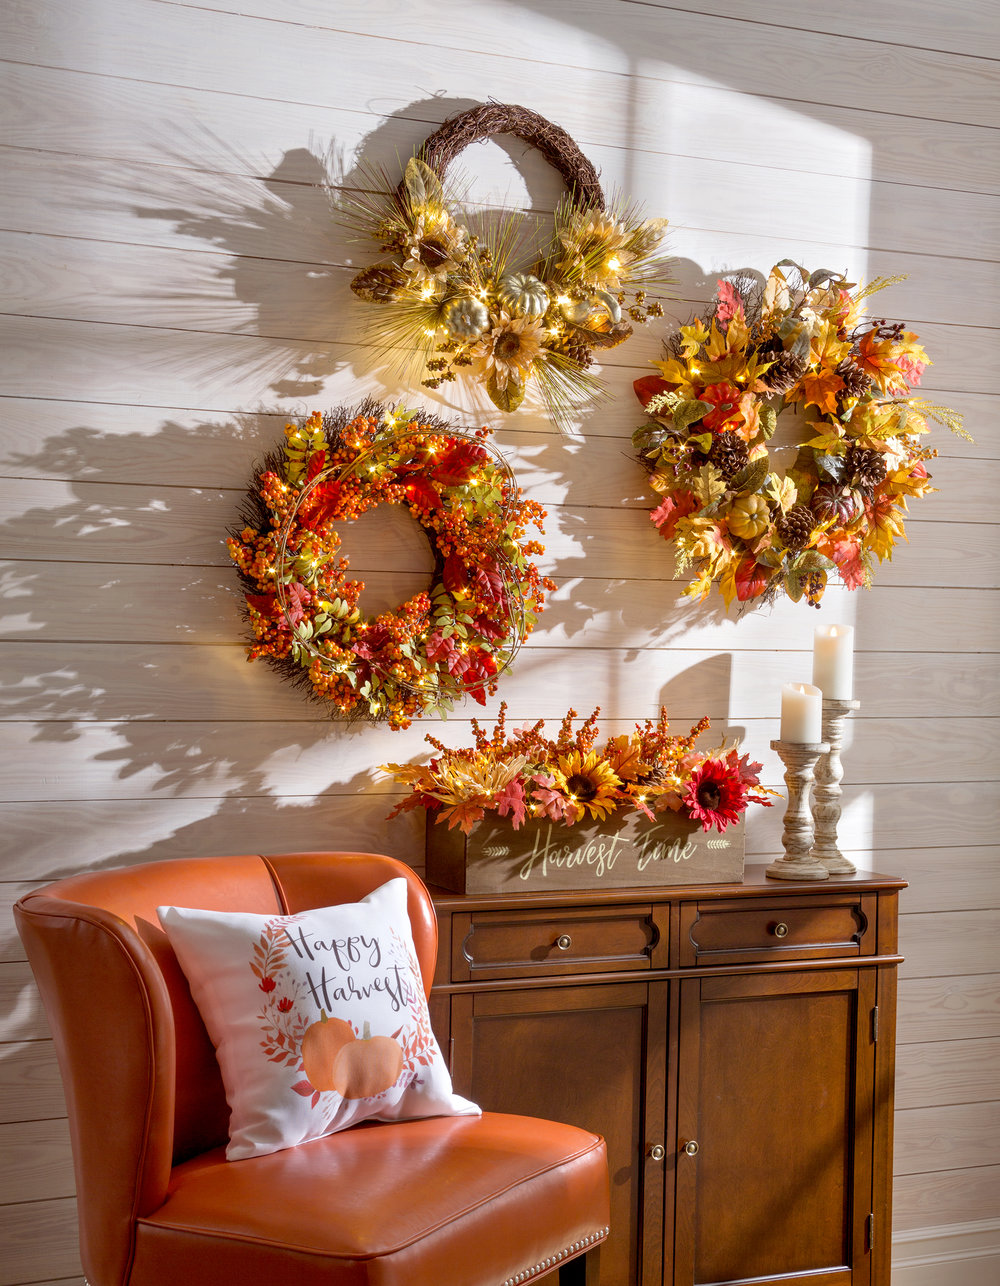 574524-autumn wreaths with chair.jpg